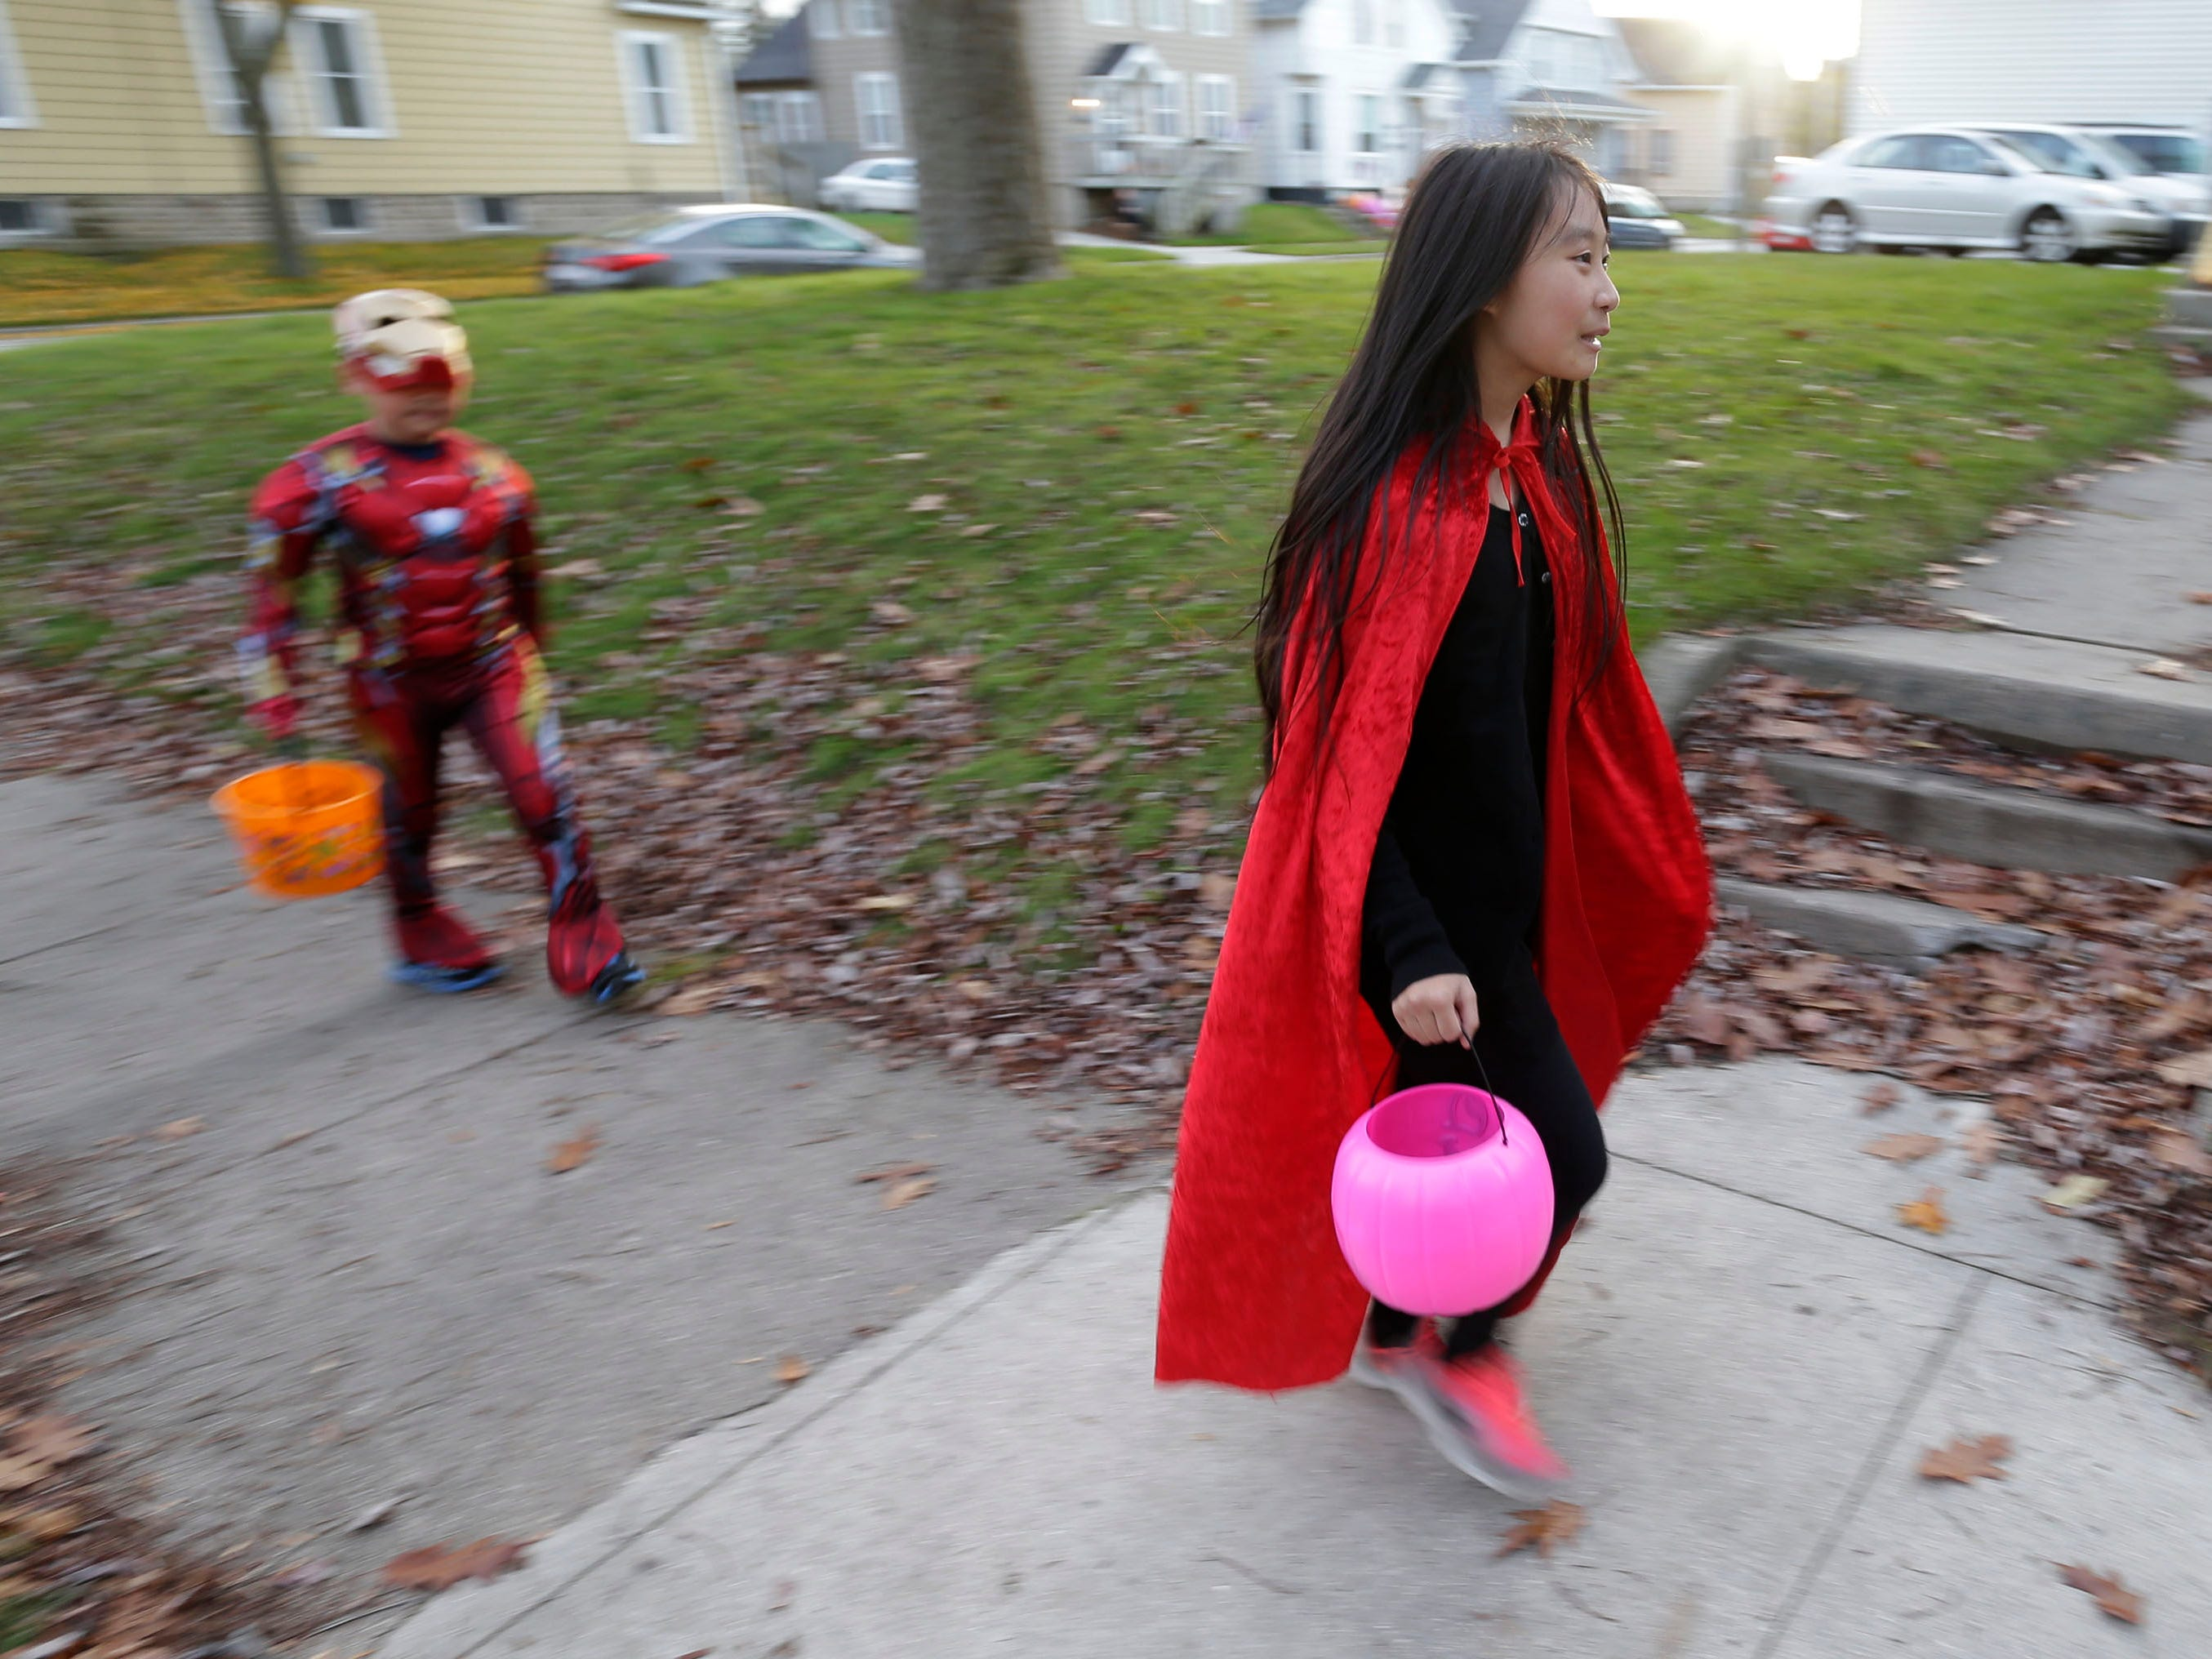 Alexander Lee, 7, left, folllows his sister Jasmine, 7, during Trick or Treat, Wednesday, October 31, 2018, in Sheboygan, Wis.